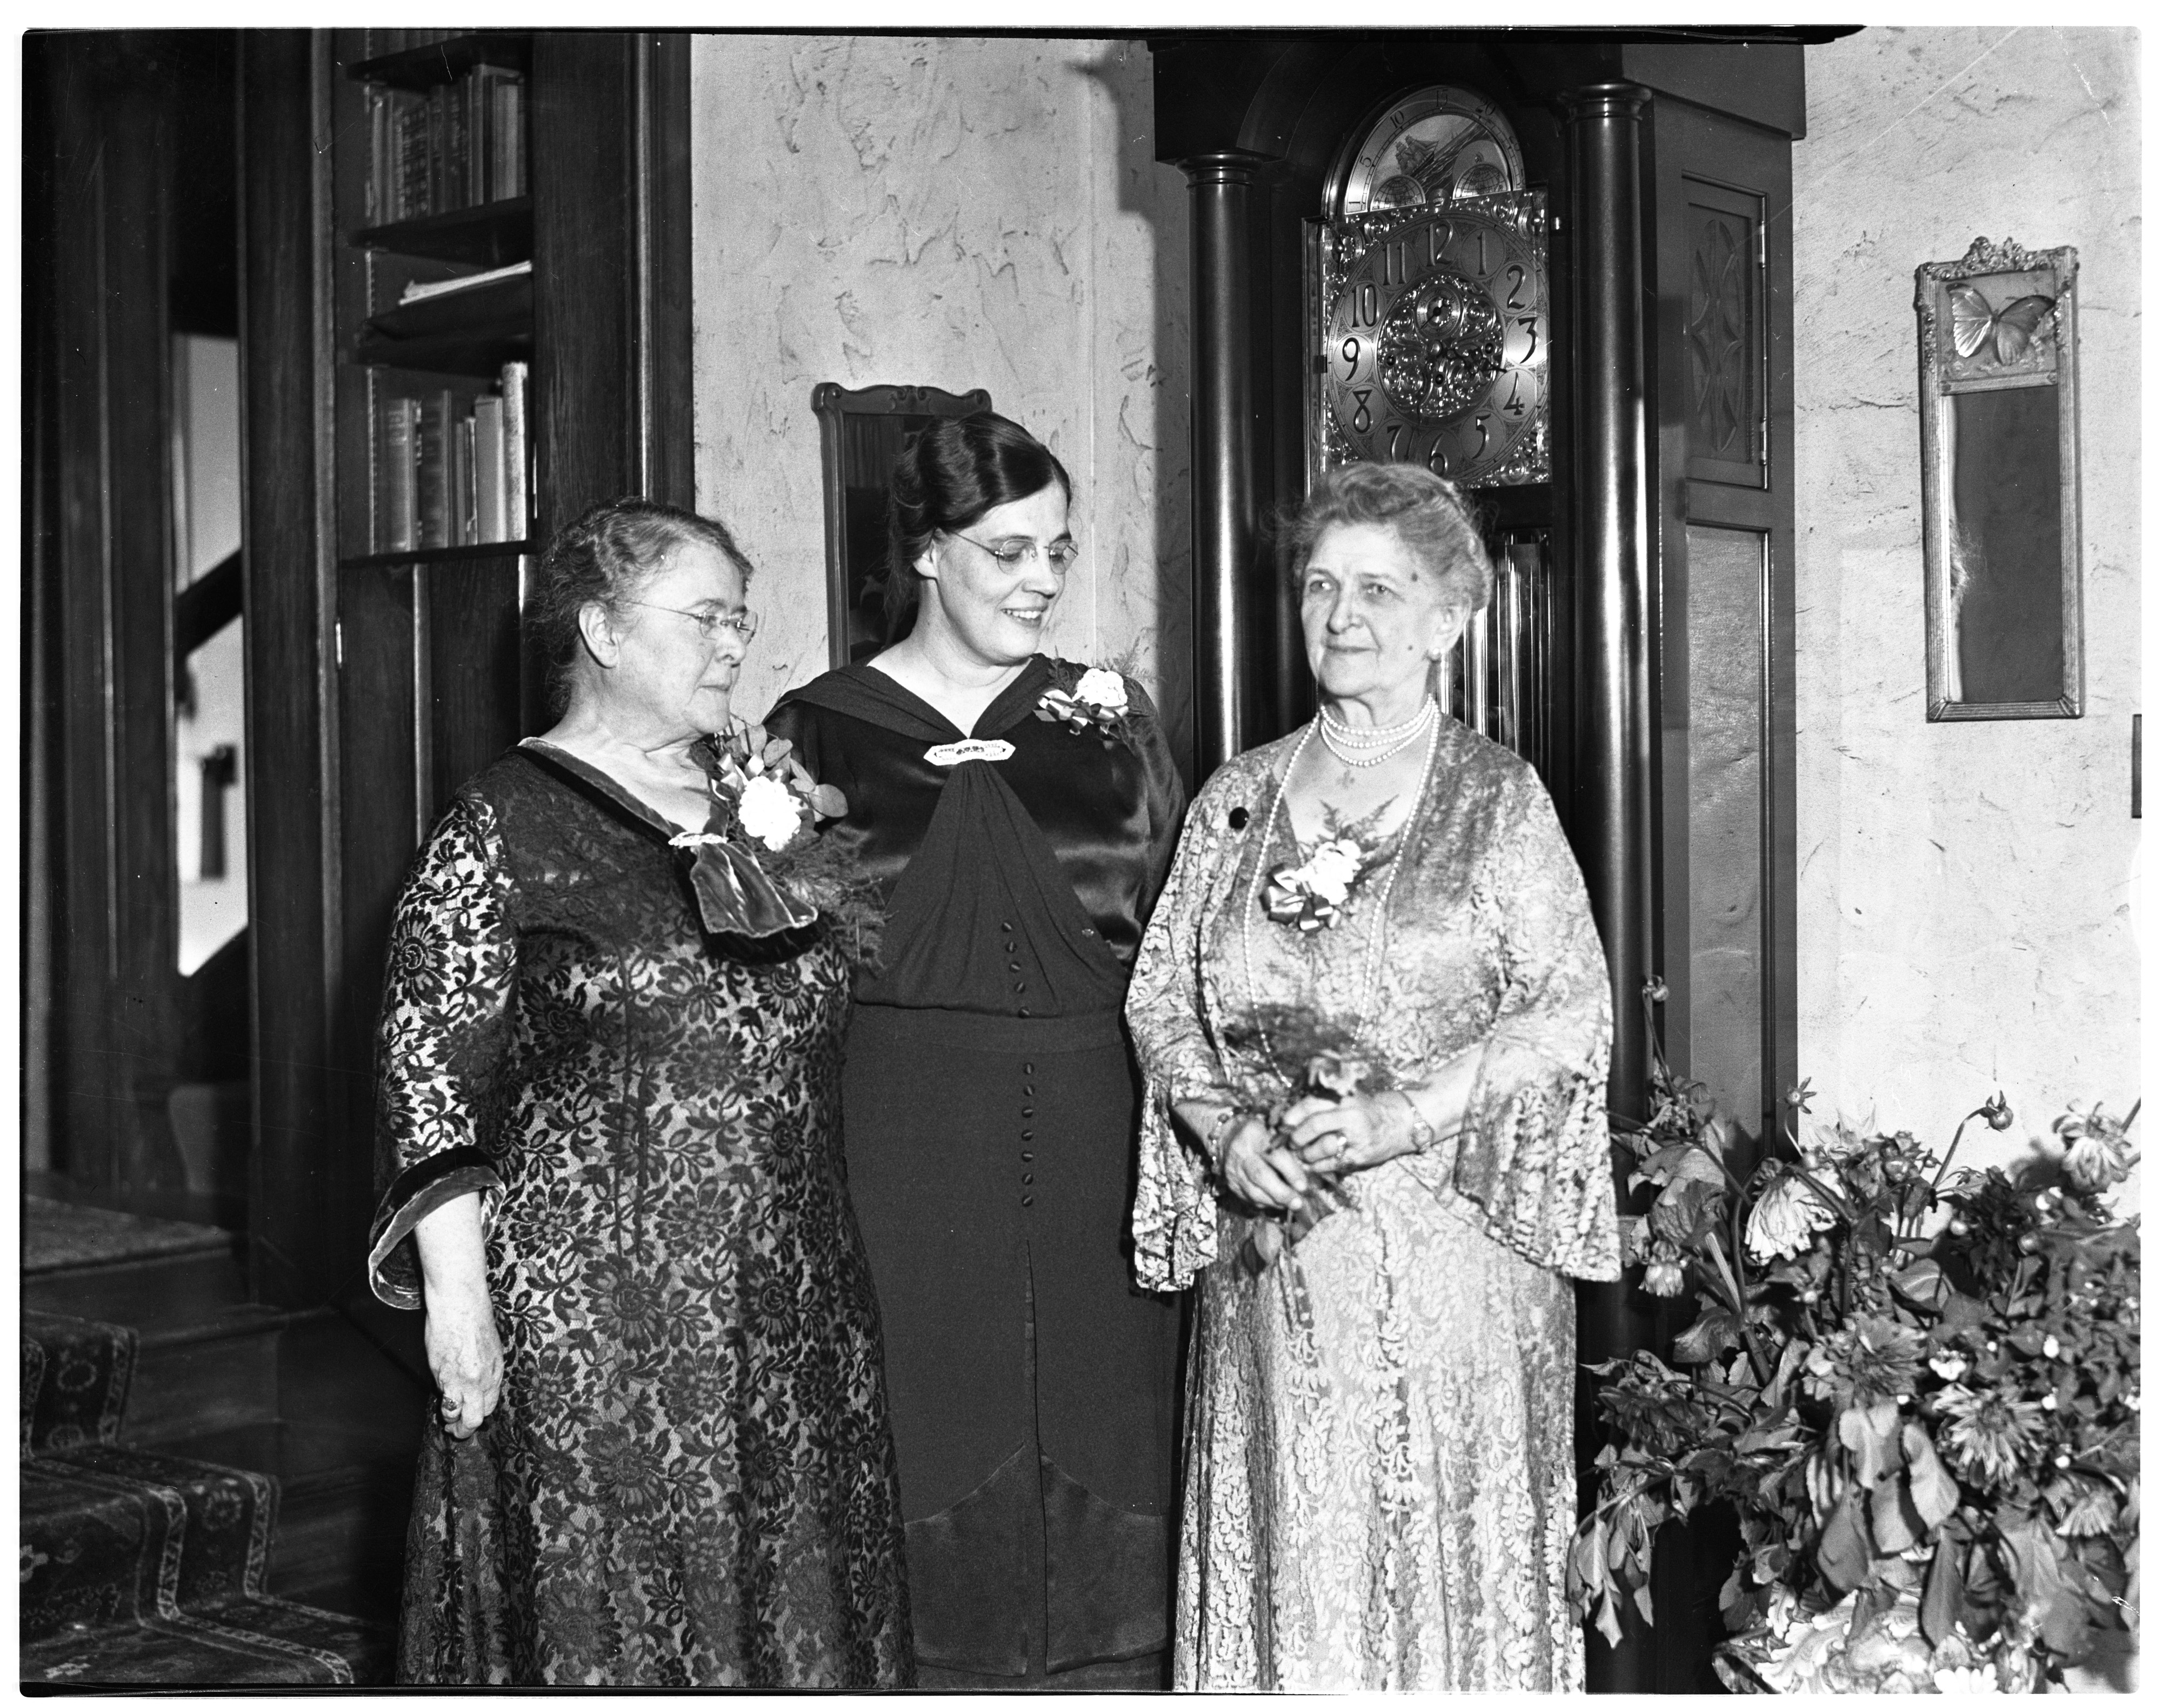 Mrs. Morris W. Leibert, Visitor Here Is Feted At Graystones, October 2, 1936 image